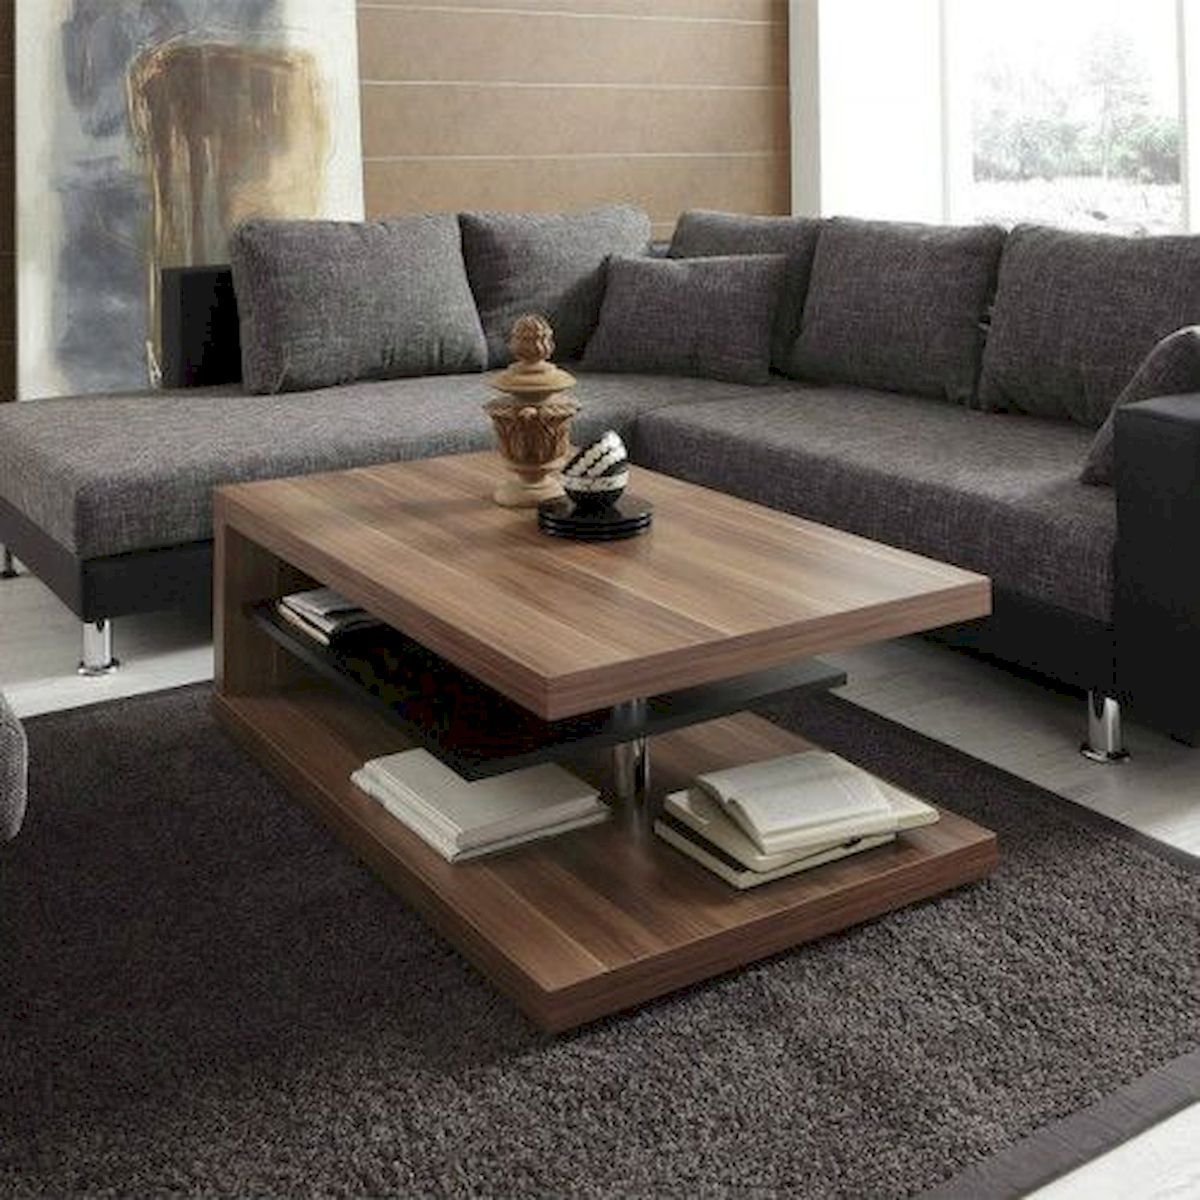 Coffee Table Ideas For Your Living Room Jihanshanum Center Table Living Room Coffee Table Coffee Table Design [ 1200 x 1200 Pixel ]